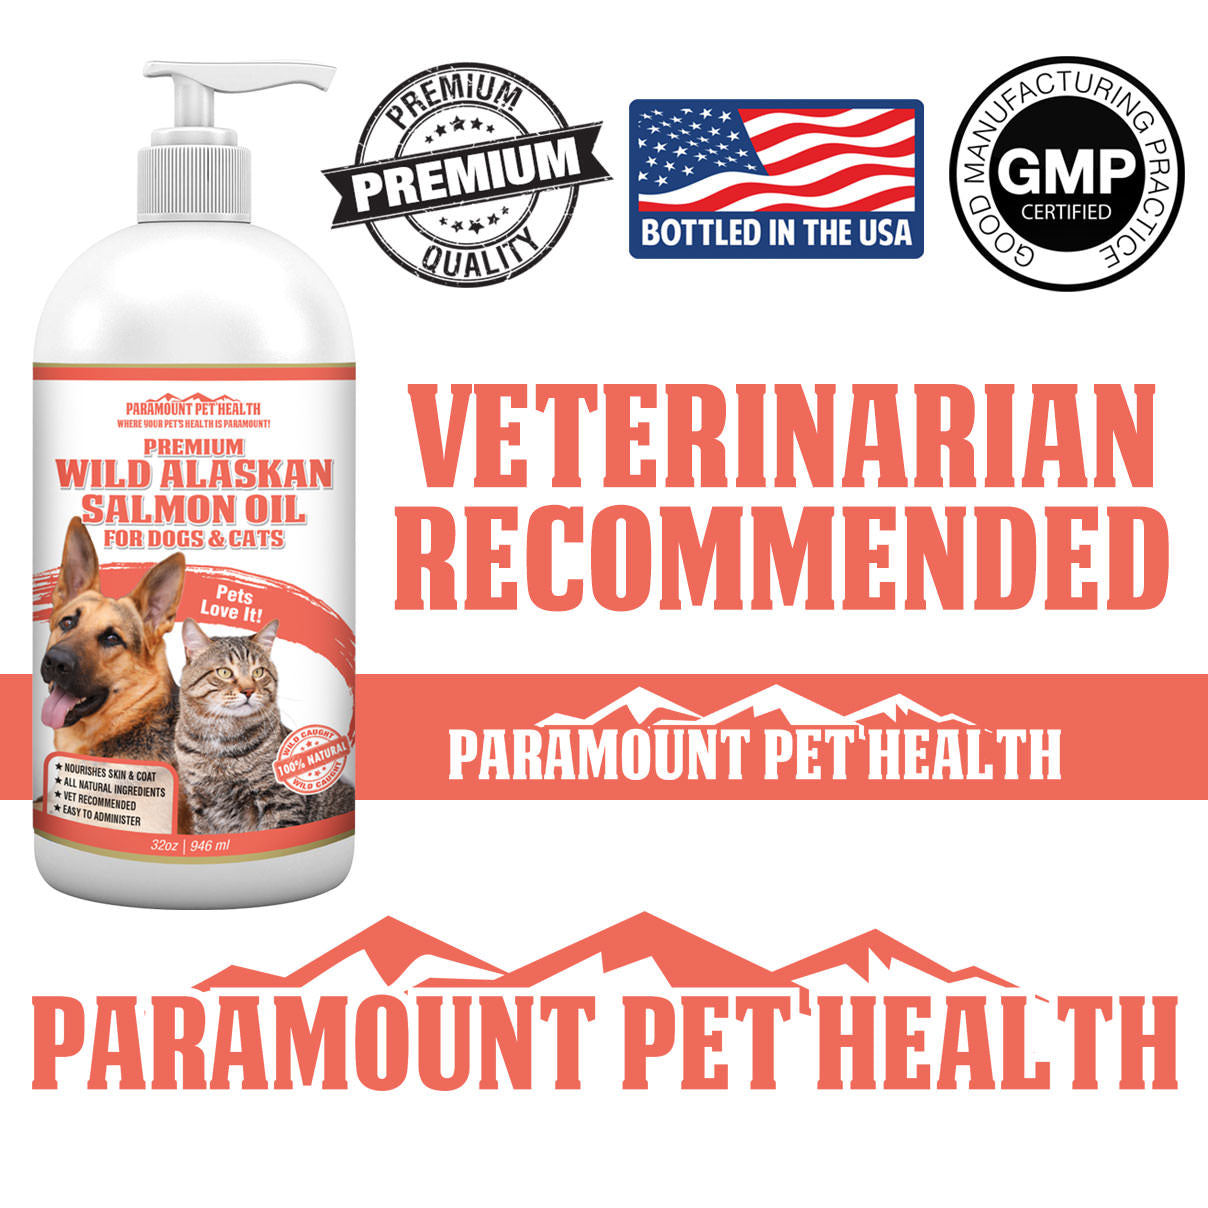 Wild Alaskan Salmon Oil for Dogs and Cats Vet Recommended